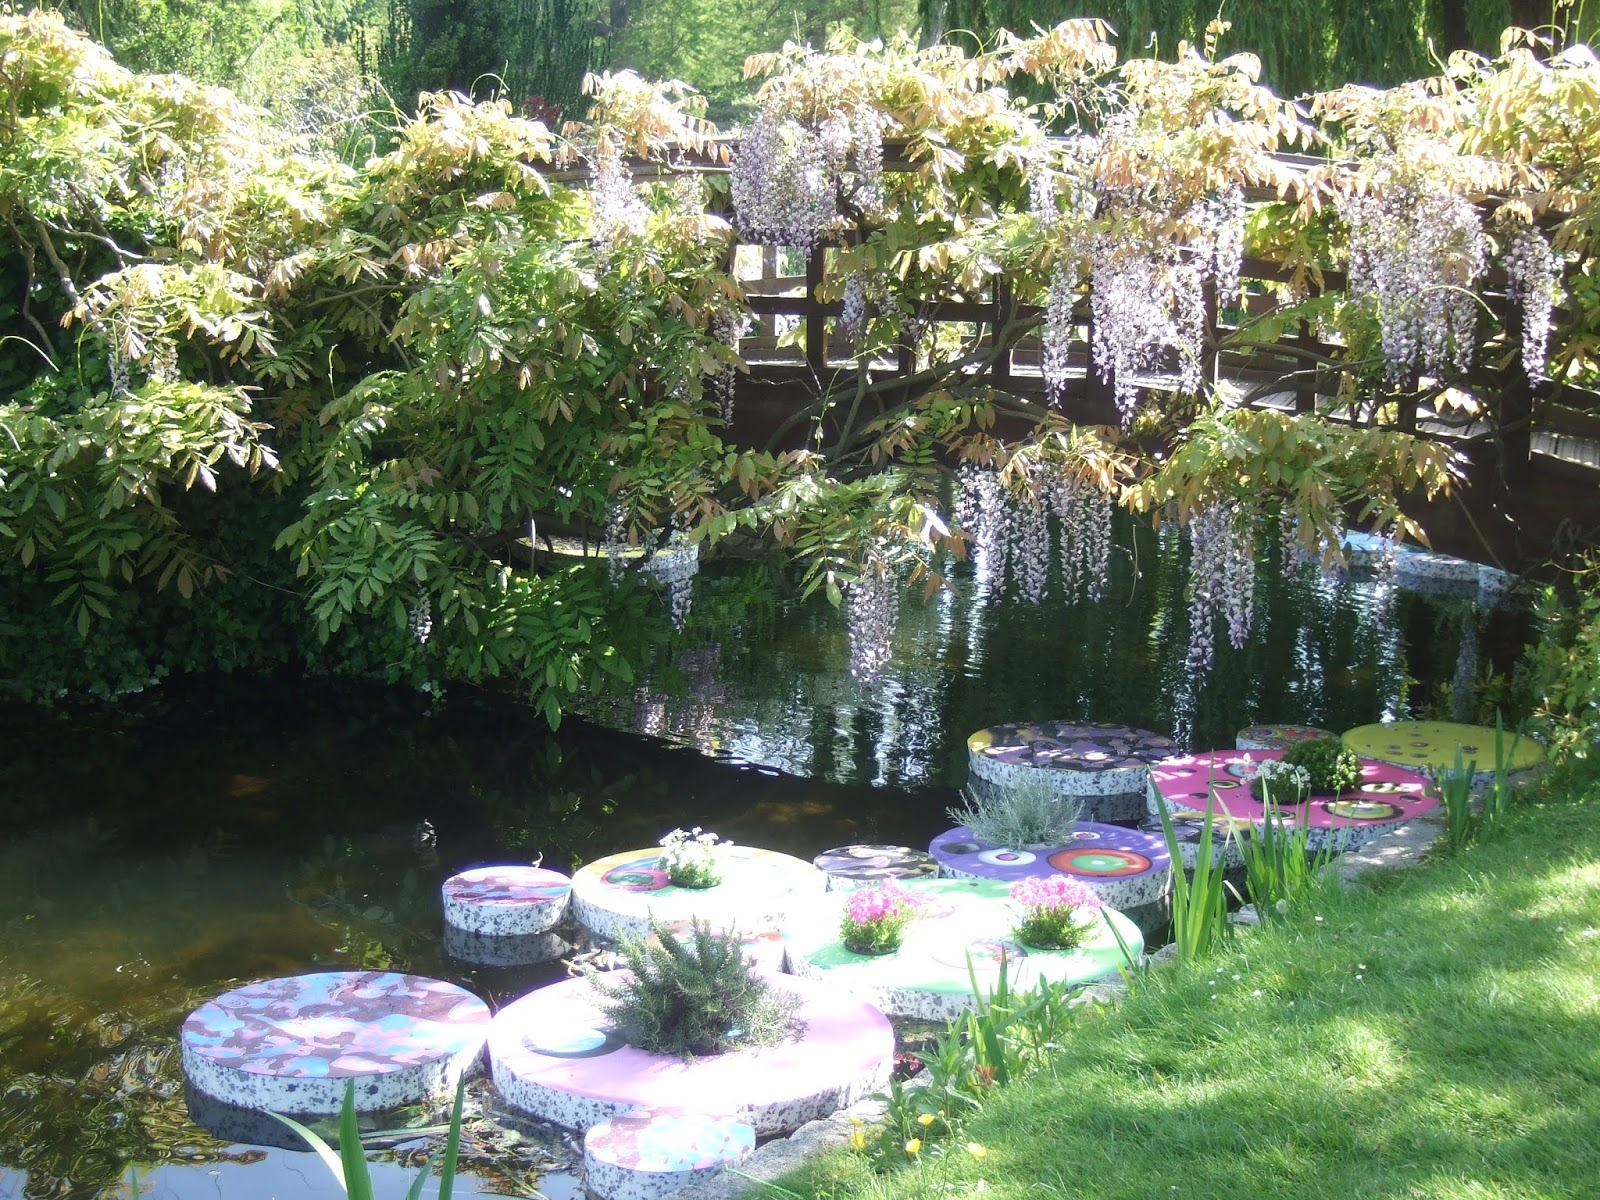 Travel in a garden floating garden regent 39 s park london for Landscape my garden